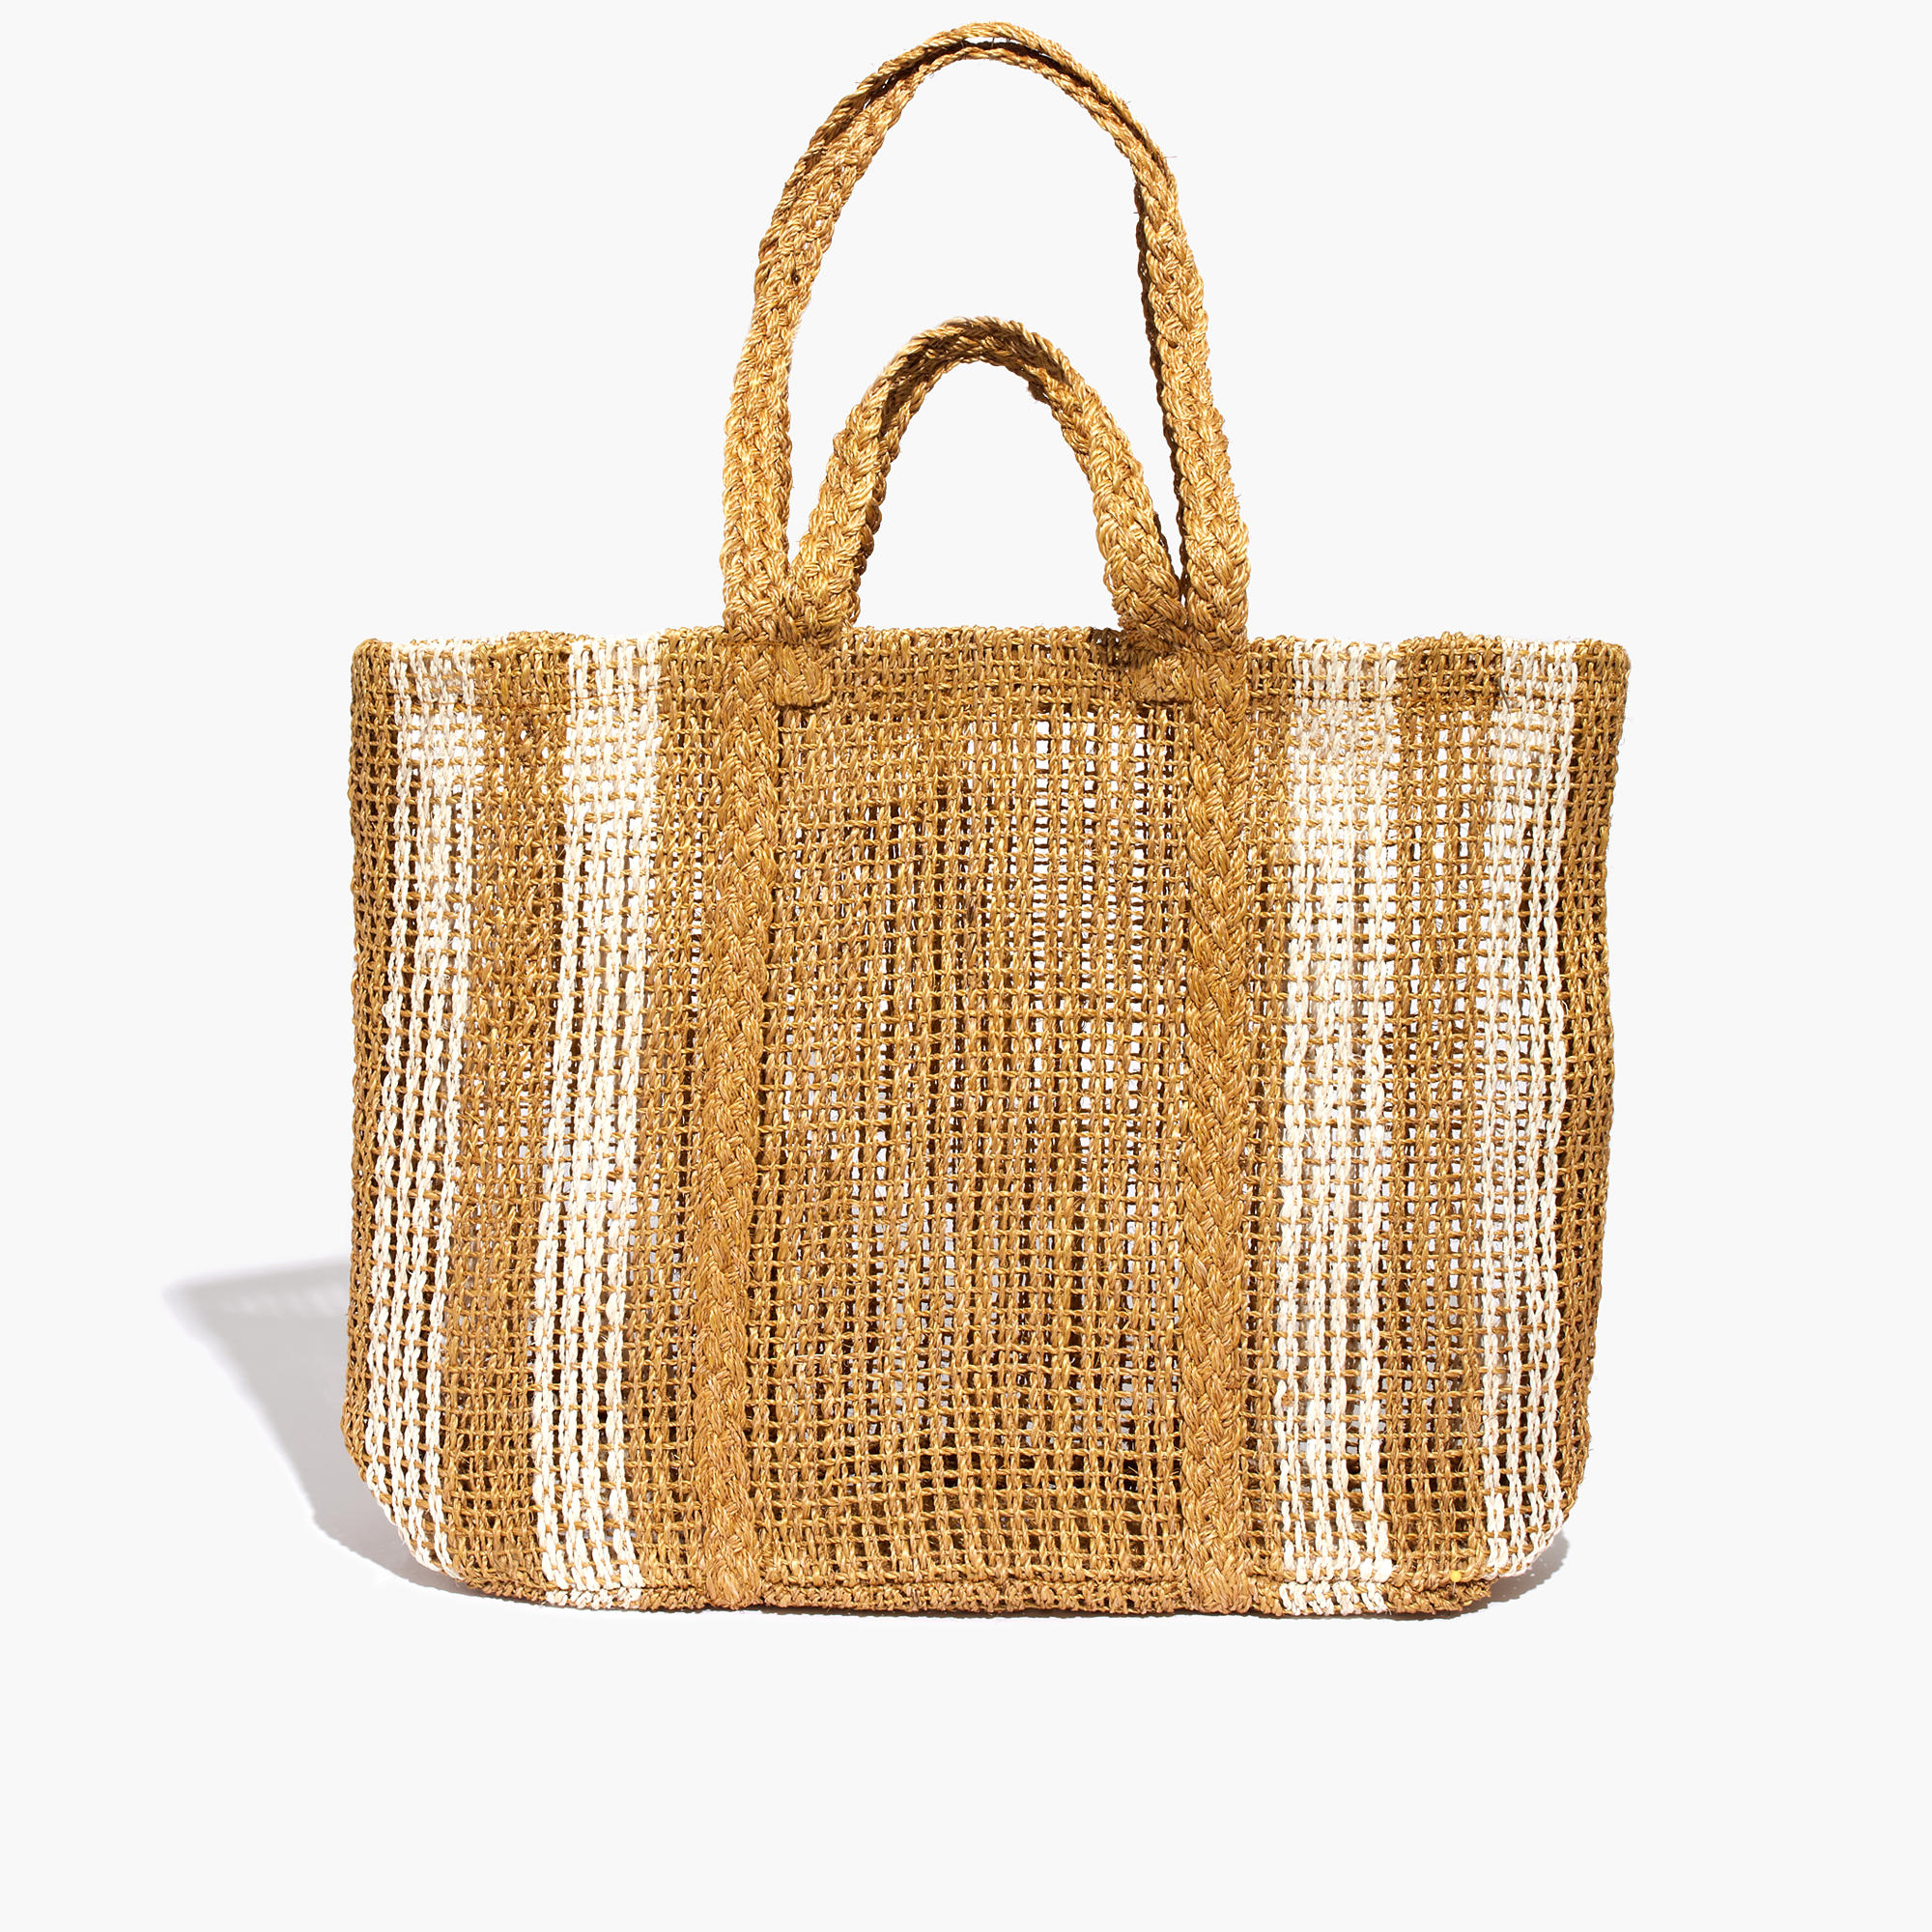 10 swoon-worthy beach bags under $60 for your summer vacation